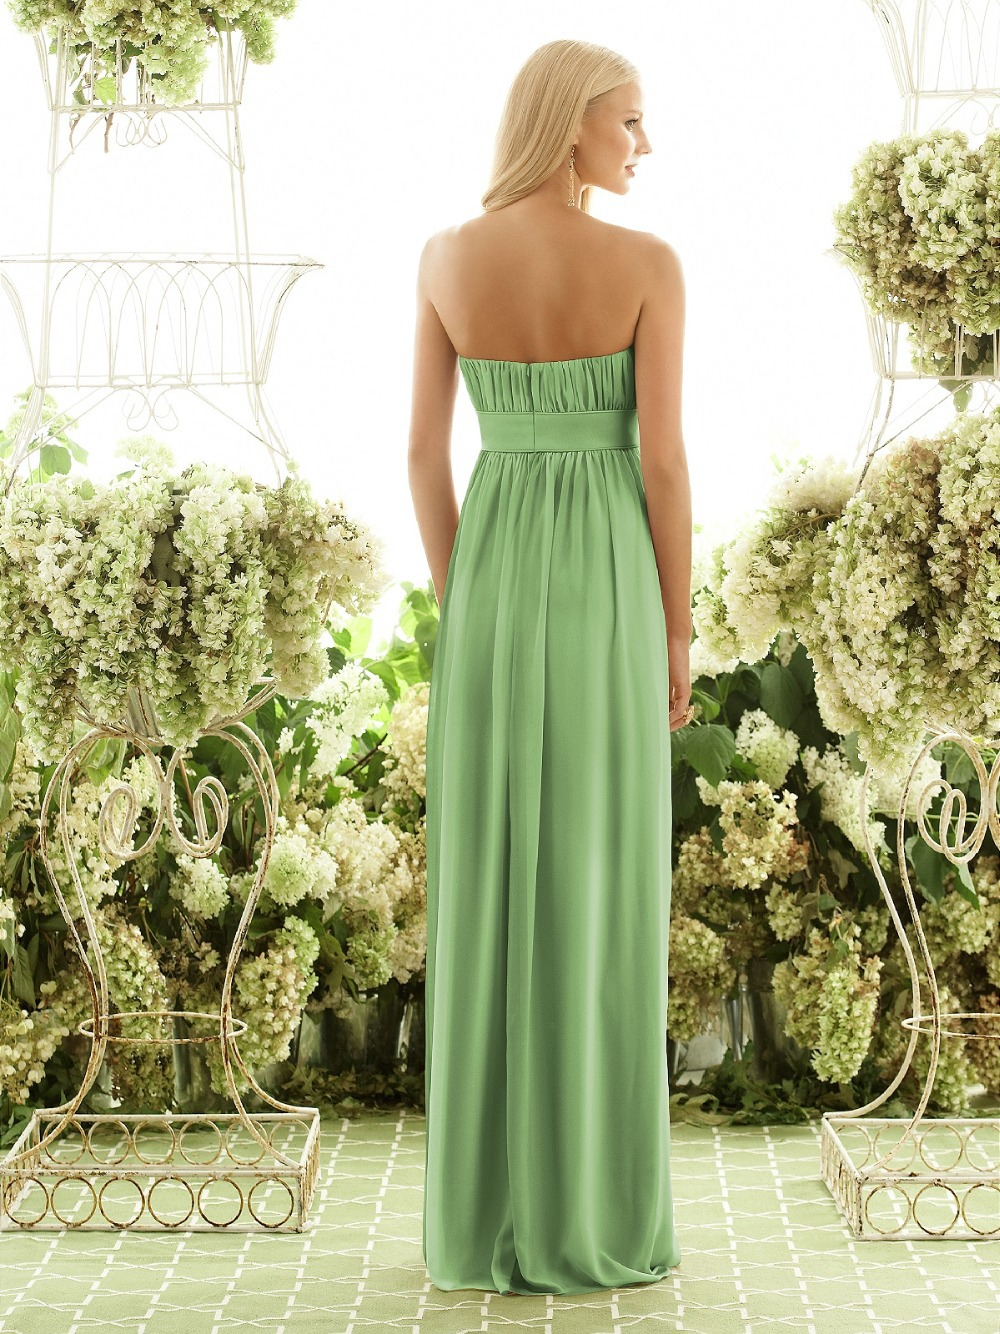 Apple green bridesmaids dresses high quality 2016 new style long apple green bridesmaids dresses high quality 2016 new style long chiffon maid of honor gowns plus sizebd 0138 in bridesmaid dresses from weddings events ombrellifo Image collections